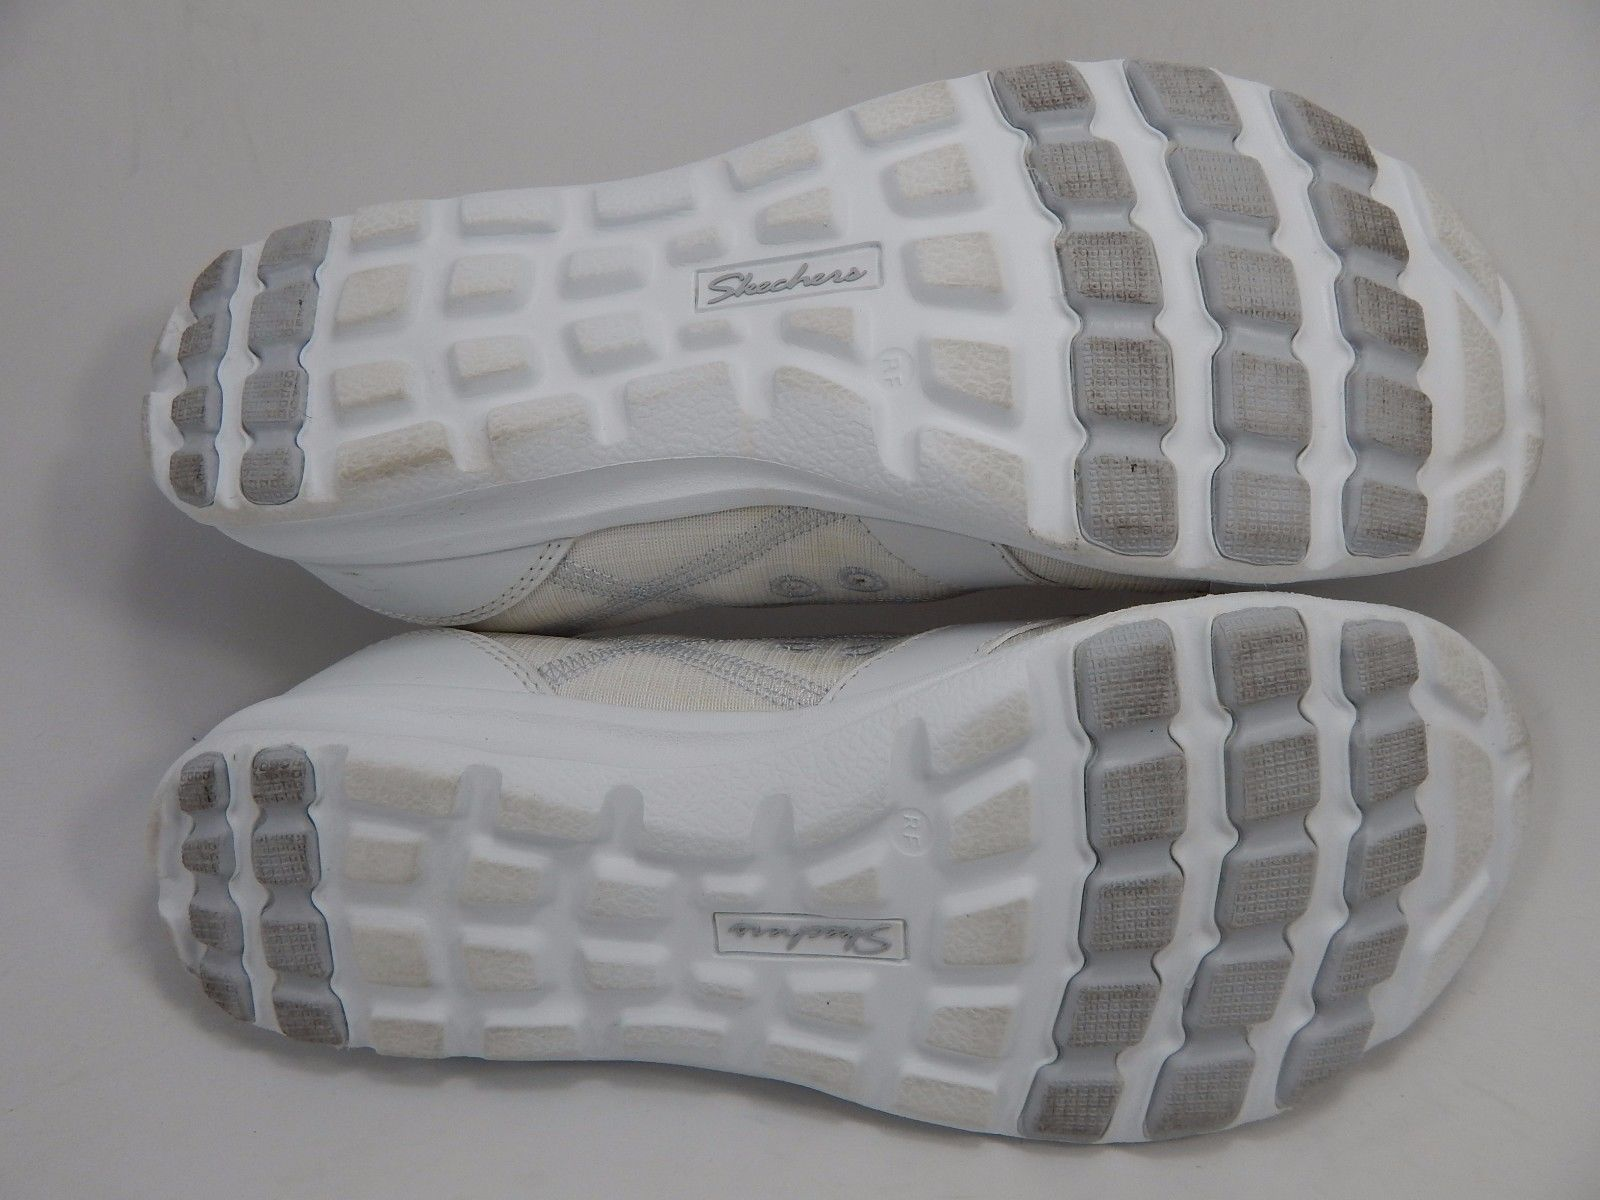 Skechers Relaxed Fit Dreamchaser Ante Up Women's Shoes Size US 6.5 M (B) EU 36.5